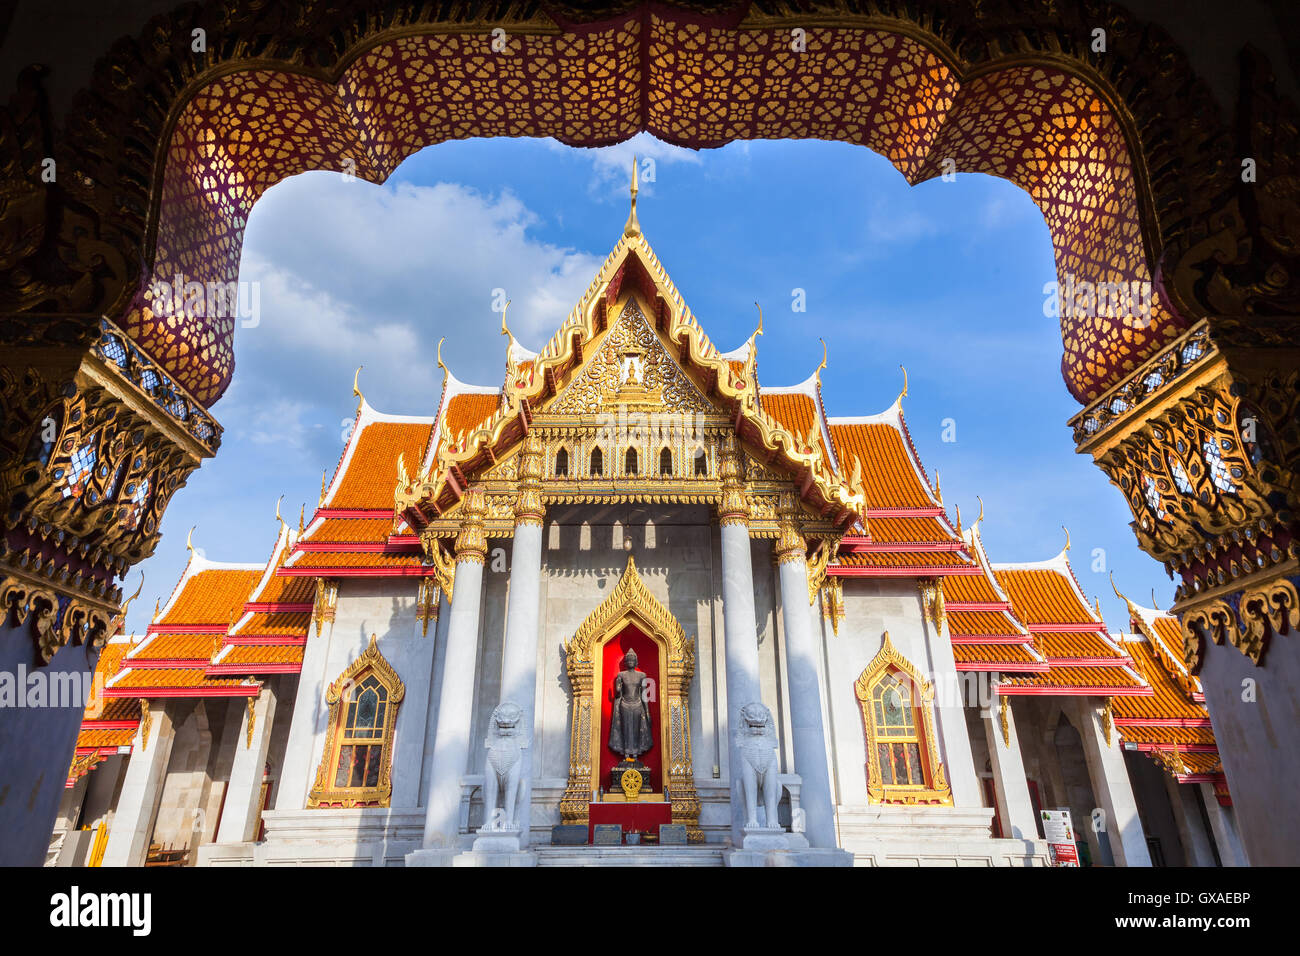 Wat Benchamabophit also known as Marble Temple at sunset, Bangkok, Thailand - Stock Image